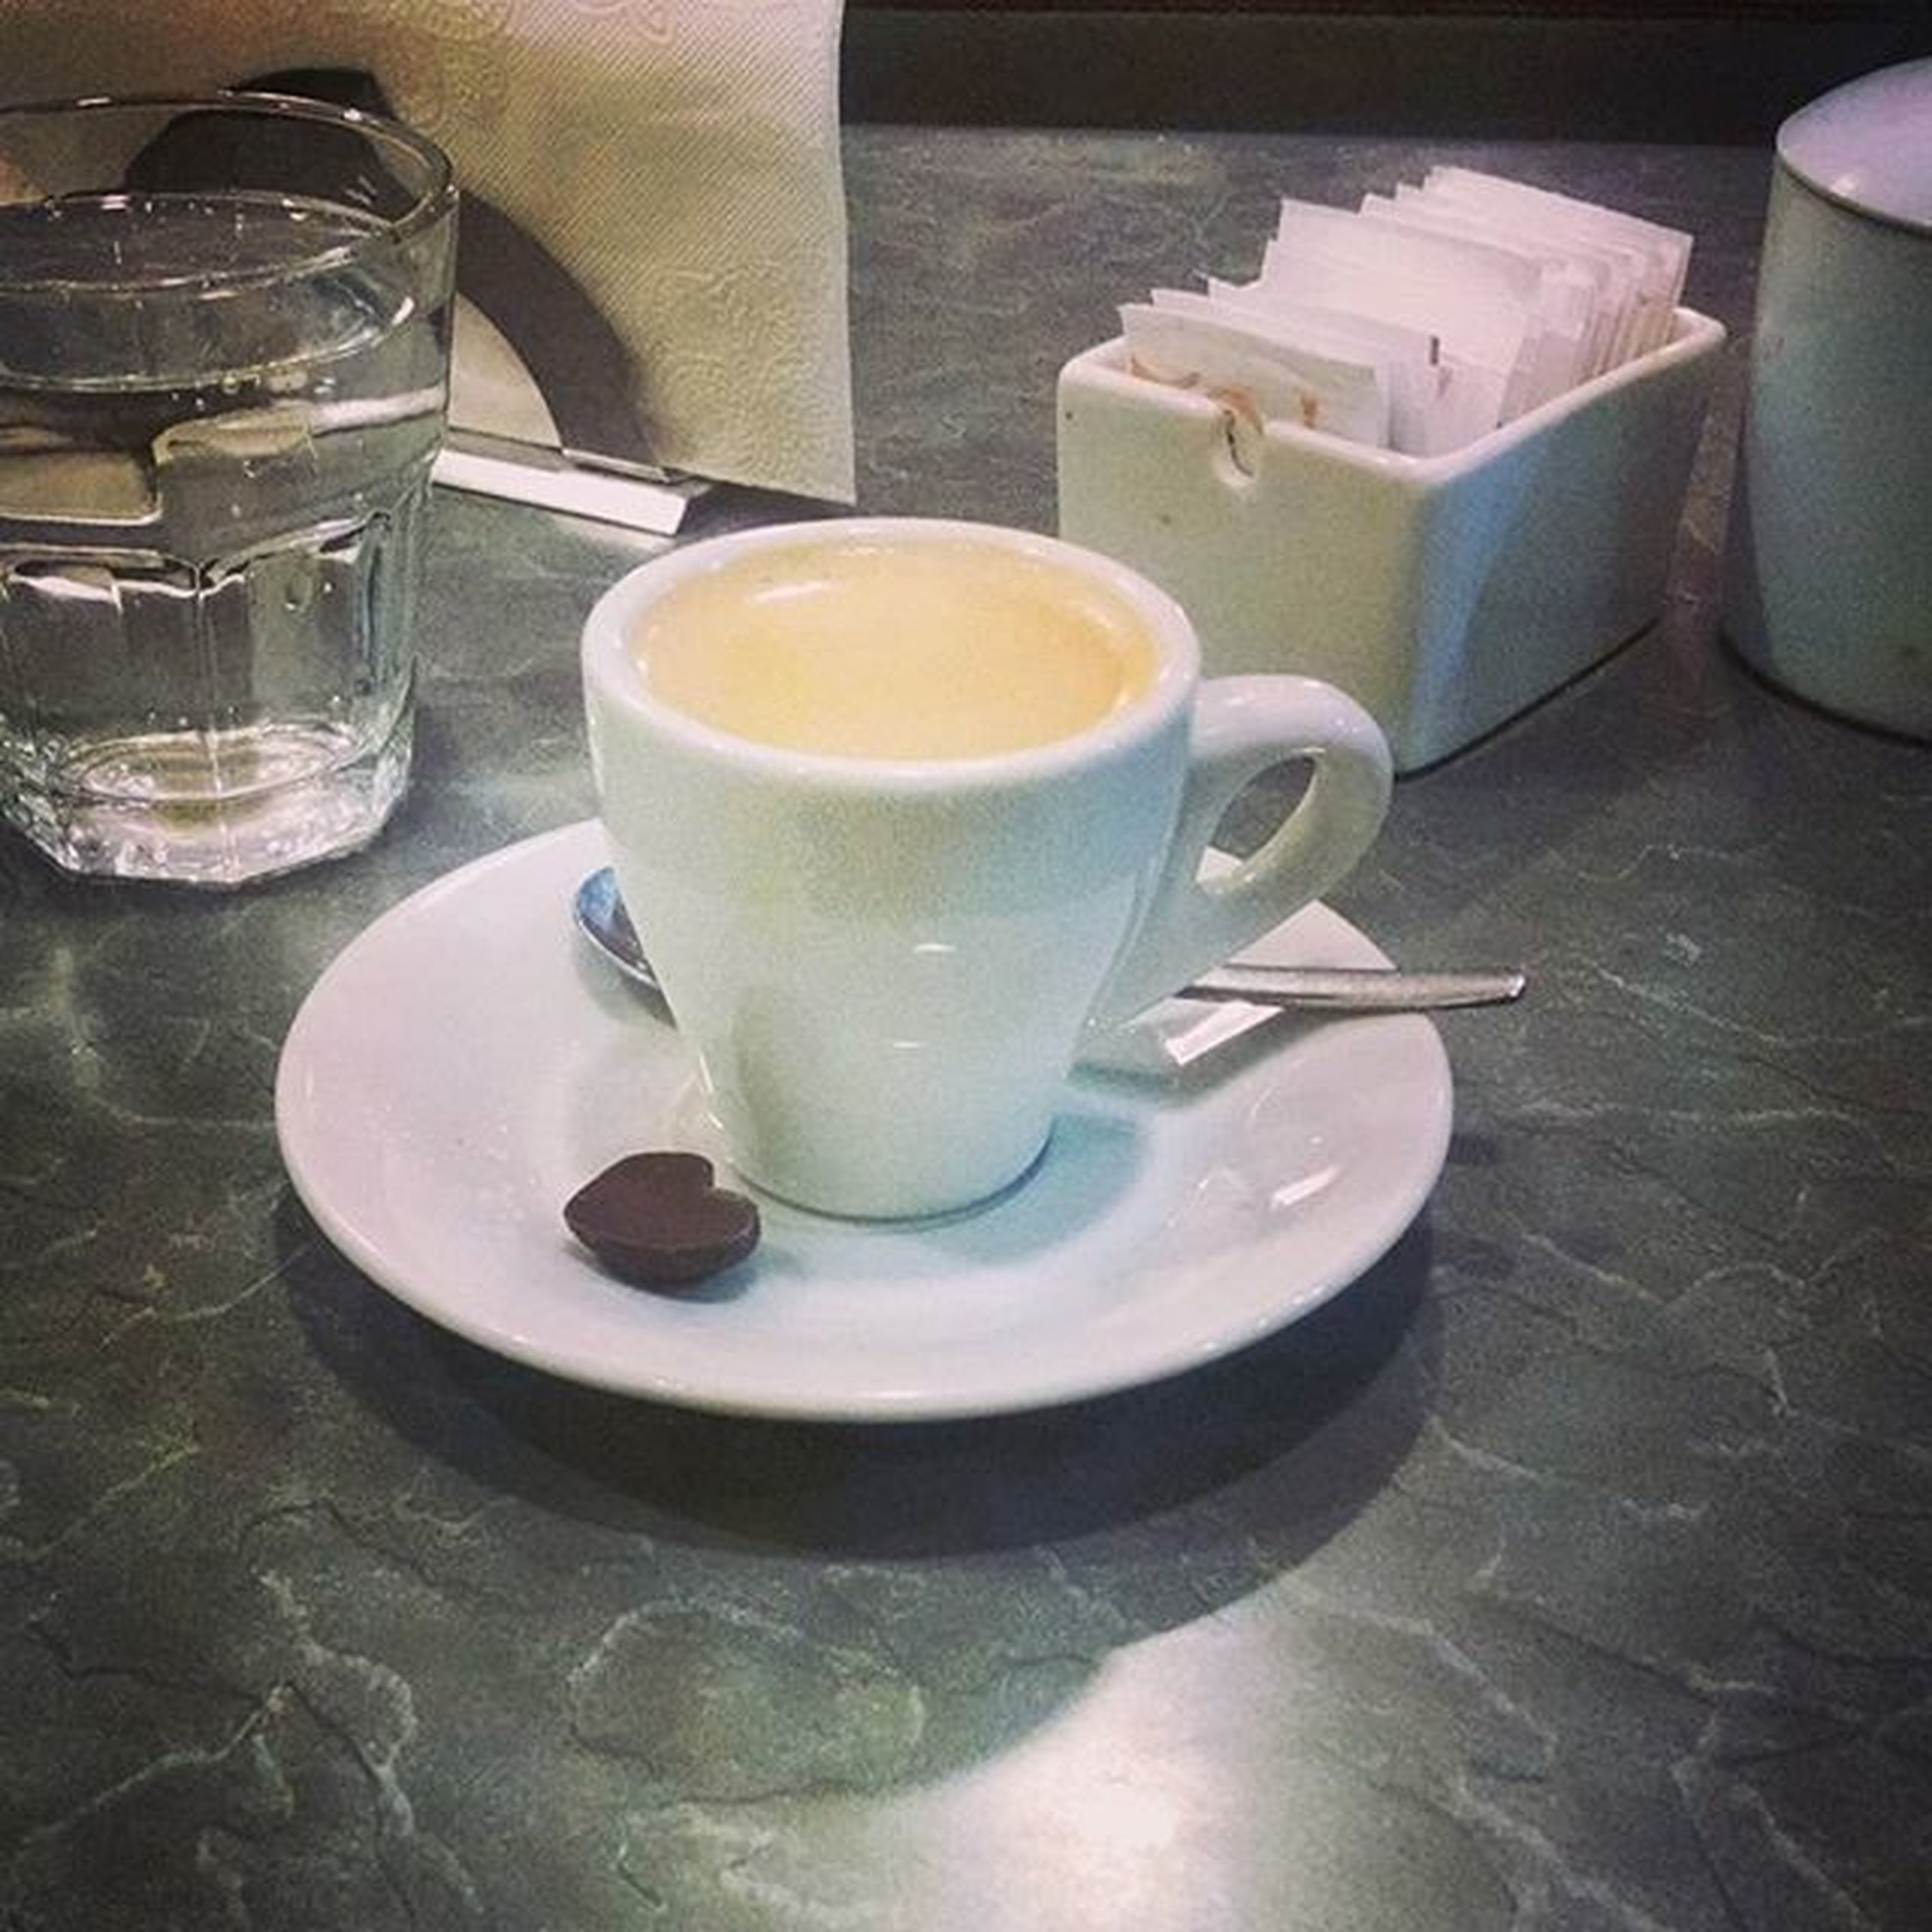 drink, food and drink, refreshment, coffee cup, saucer, coffee - drink, table, indoors, freshness, still life, coffee, cup, spoon, high angle view, frothy drink, tea cup, close-up, beverage, cappuccino, tea